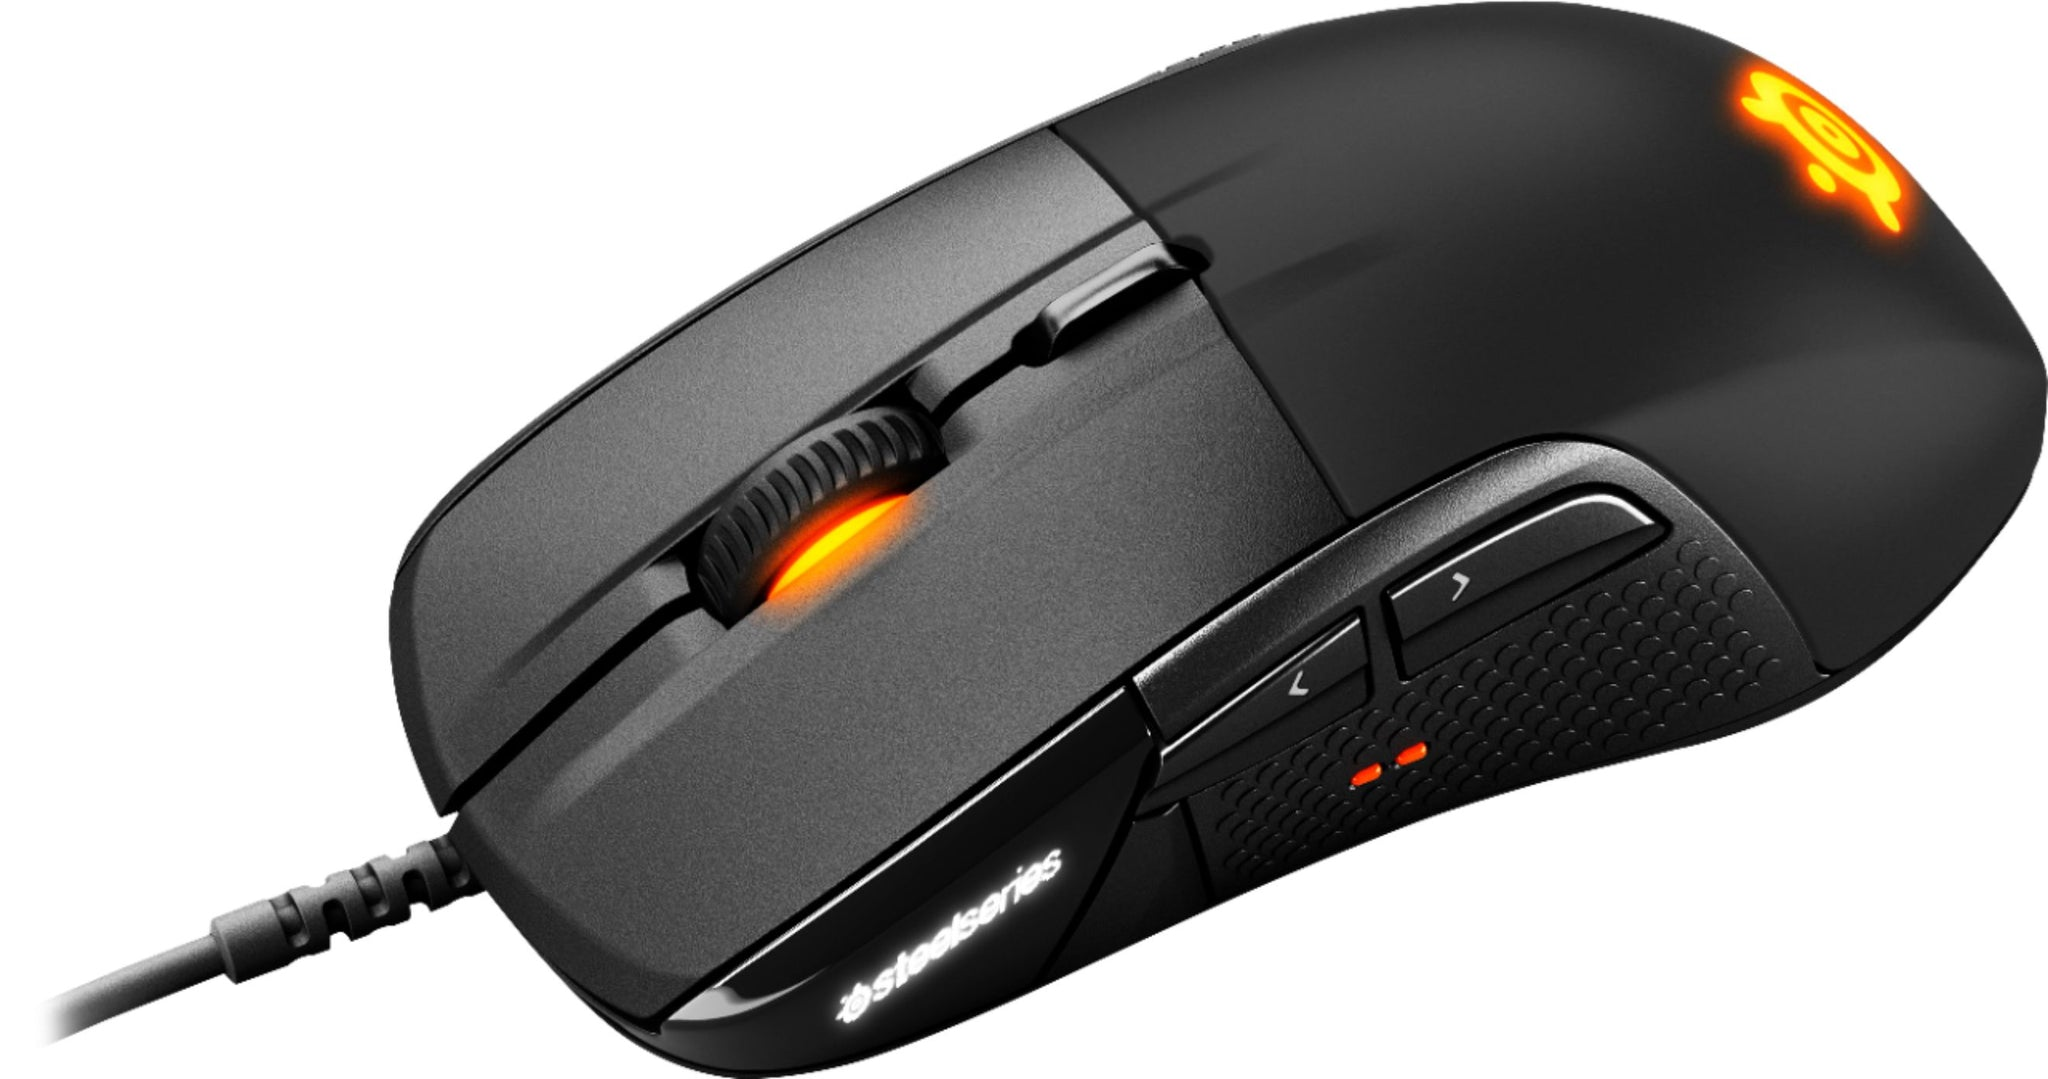 Steel Series RIVAL 710 RGB Optical USB Gaming Mouse